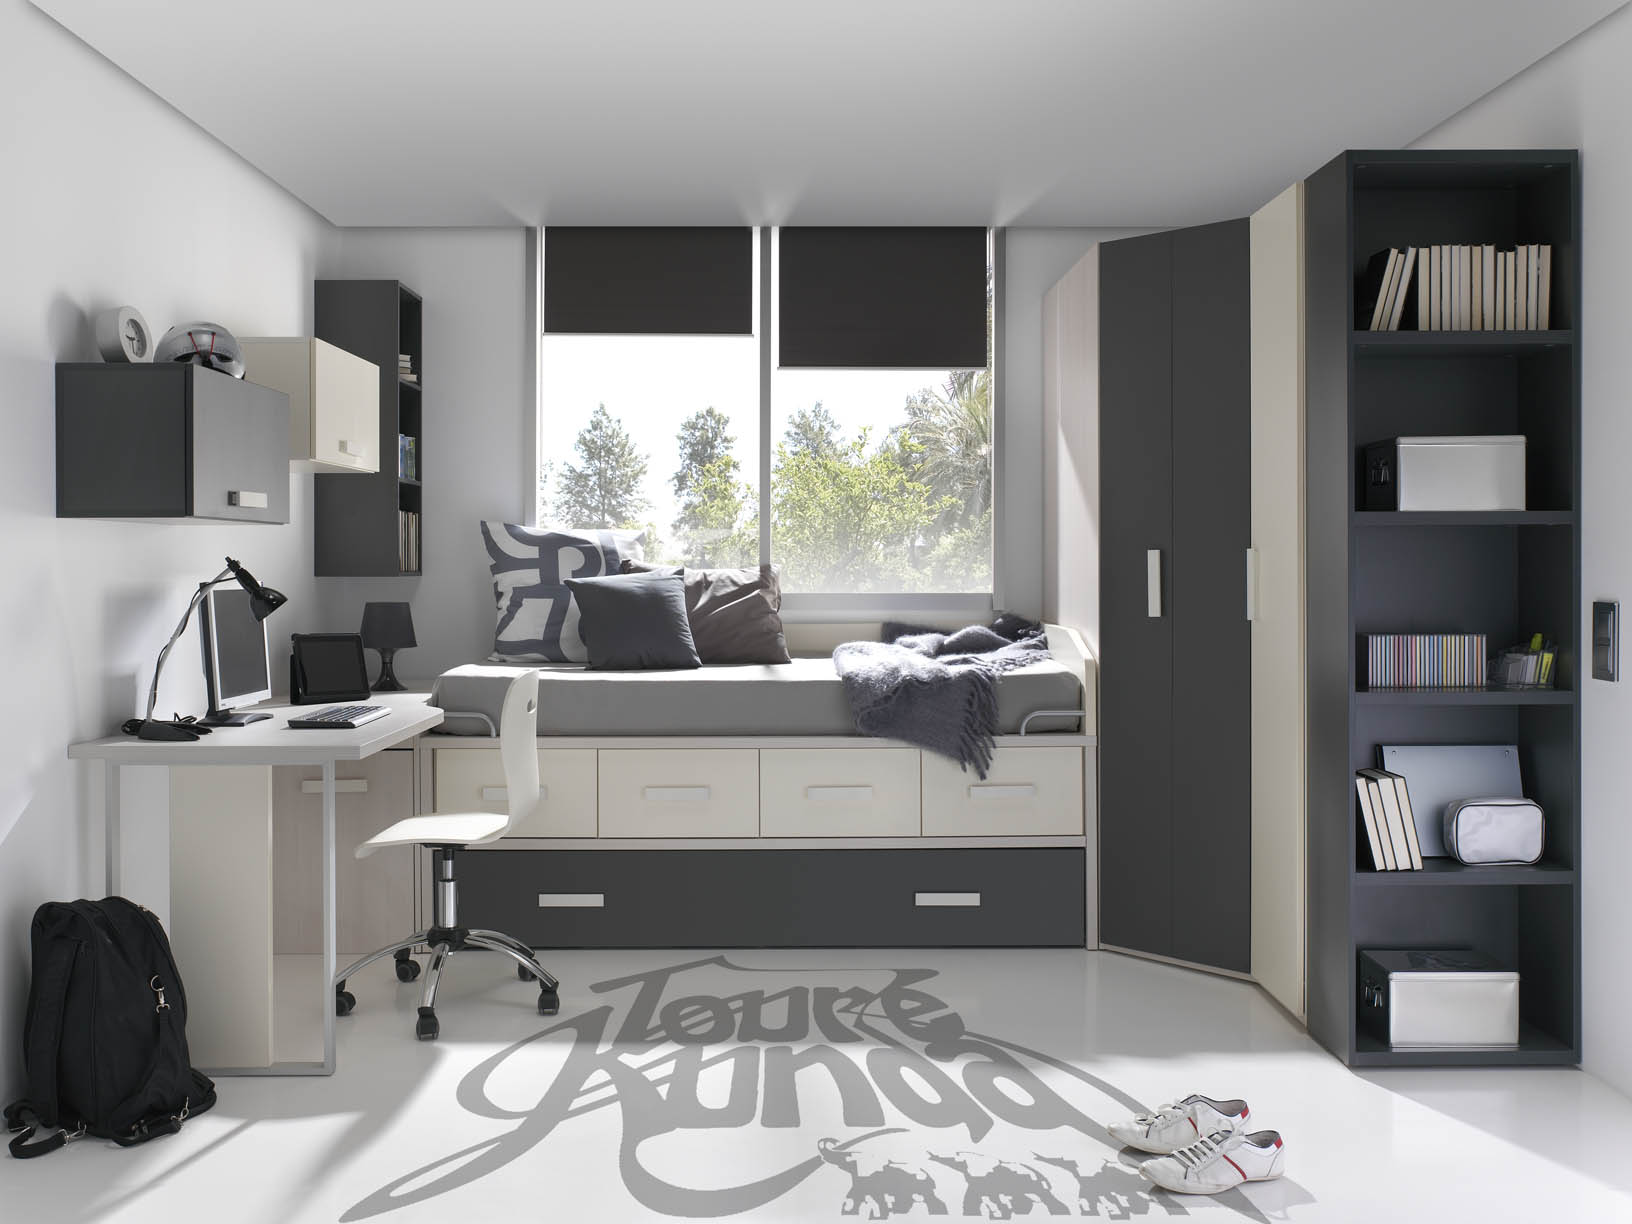 Ambientes juveniles muebles orts blog for Blog decoracion dormitorios